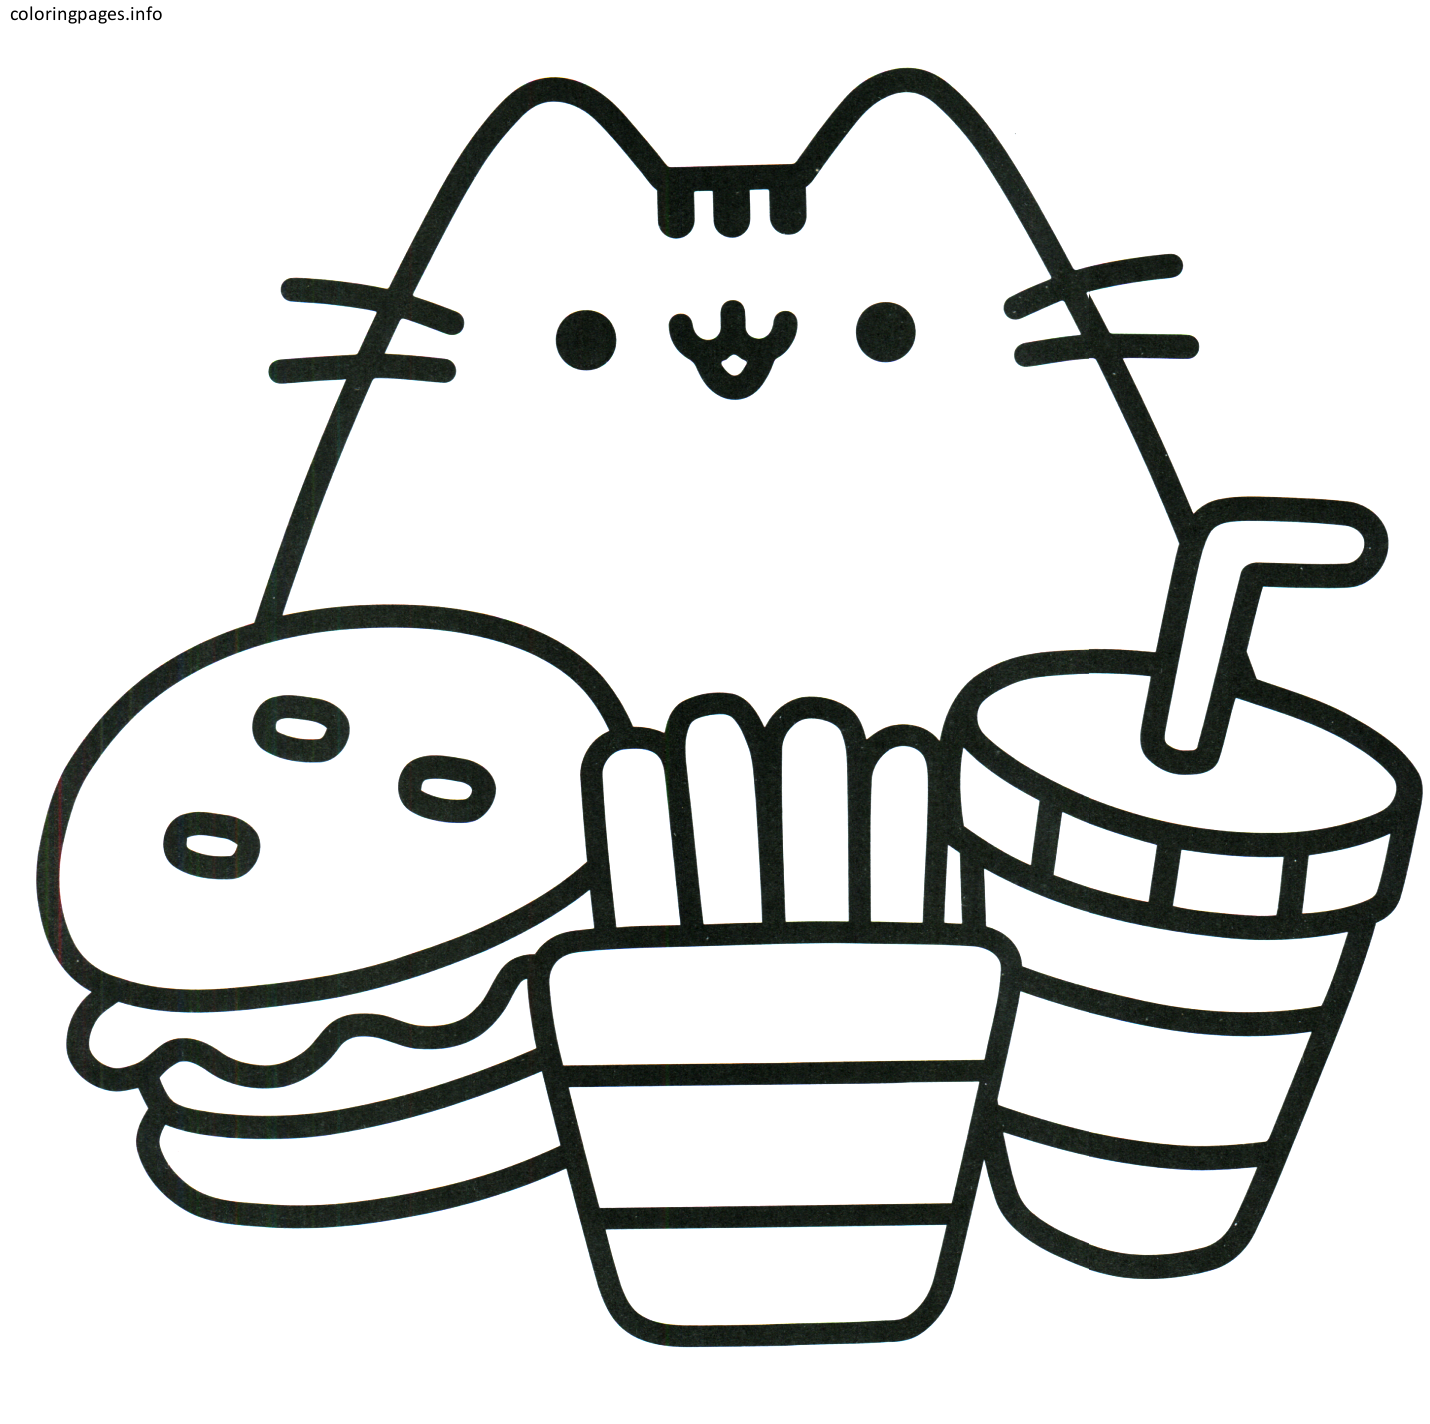 Kawaii Pusheen Cat Coloring Pages Pusheen Coloring Pages Unicorn Coloring Pages Cool Coloring Pages